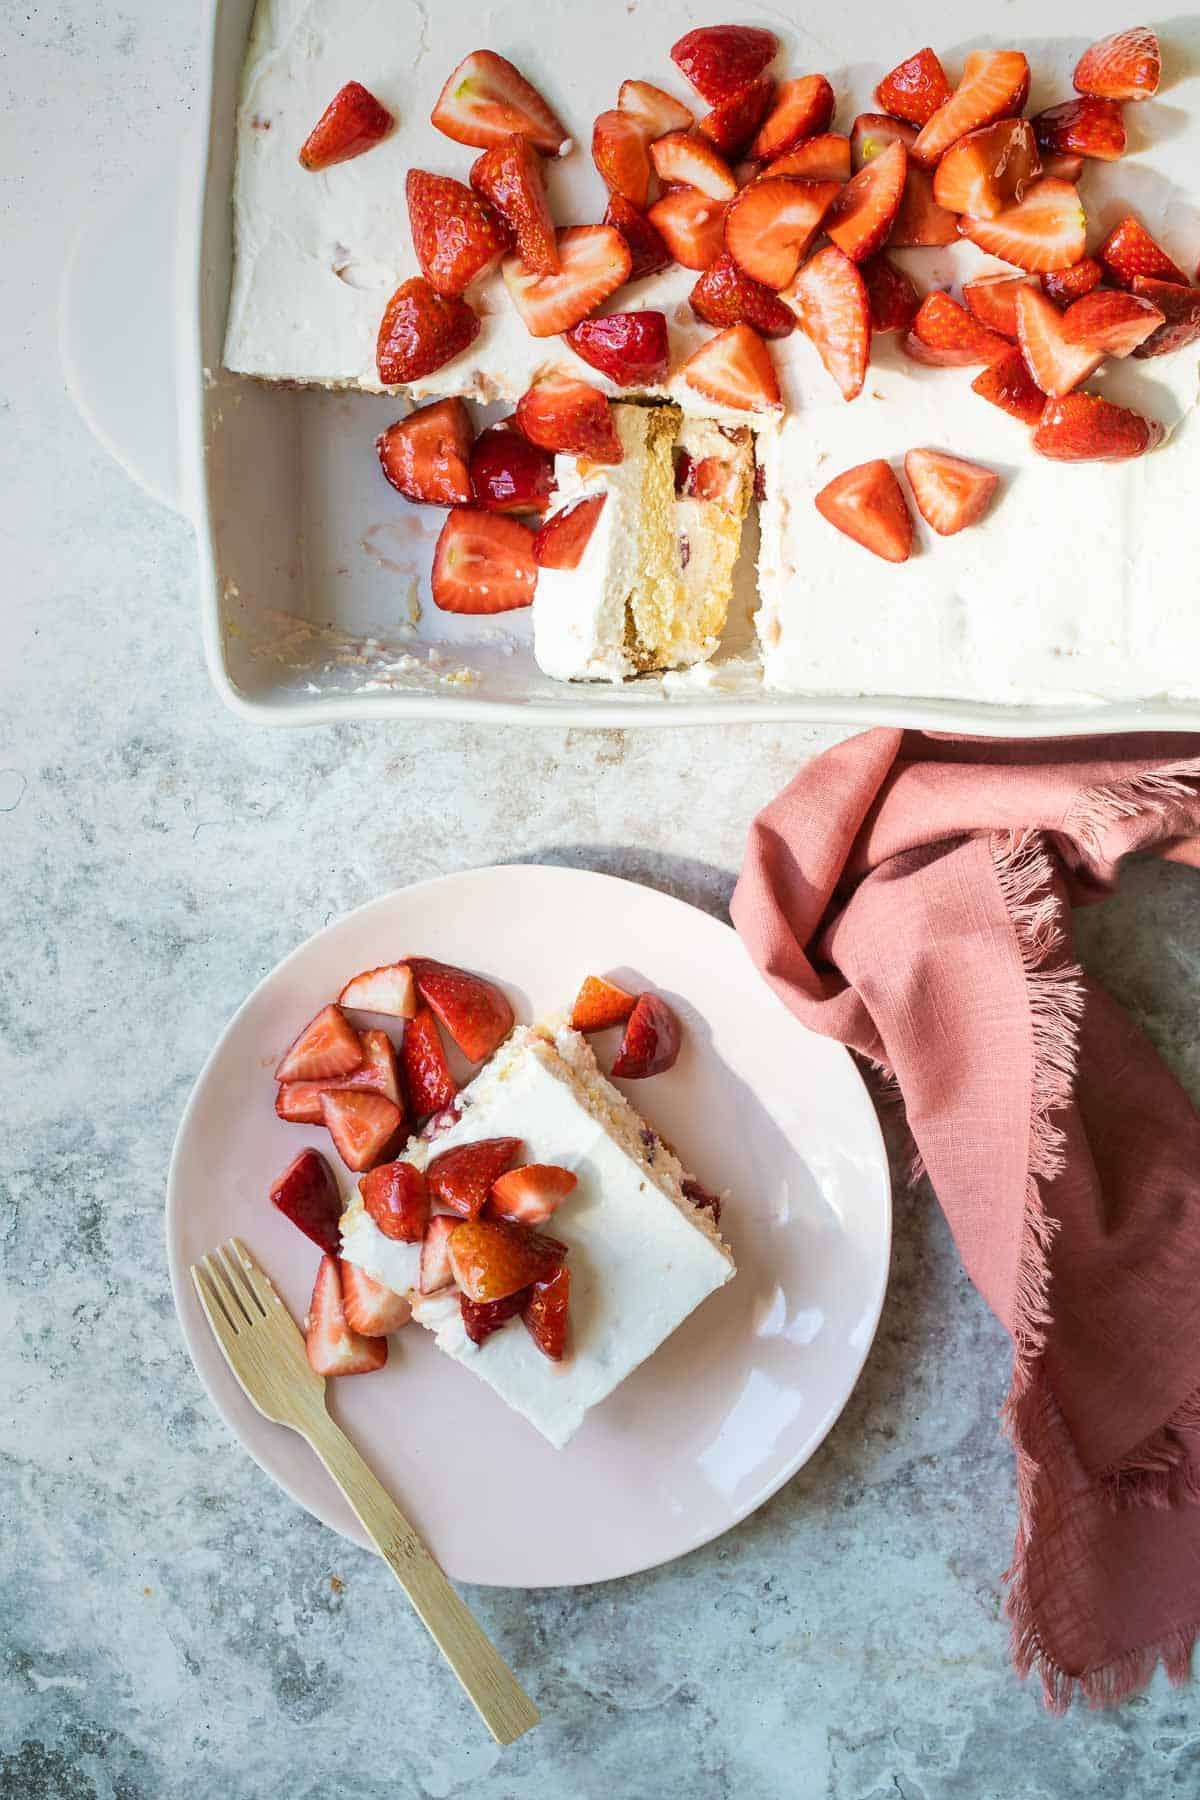 strawberry shortcake in a pan with fresh strawberries on top